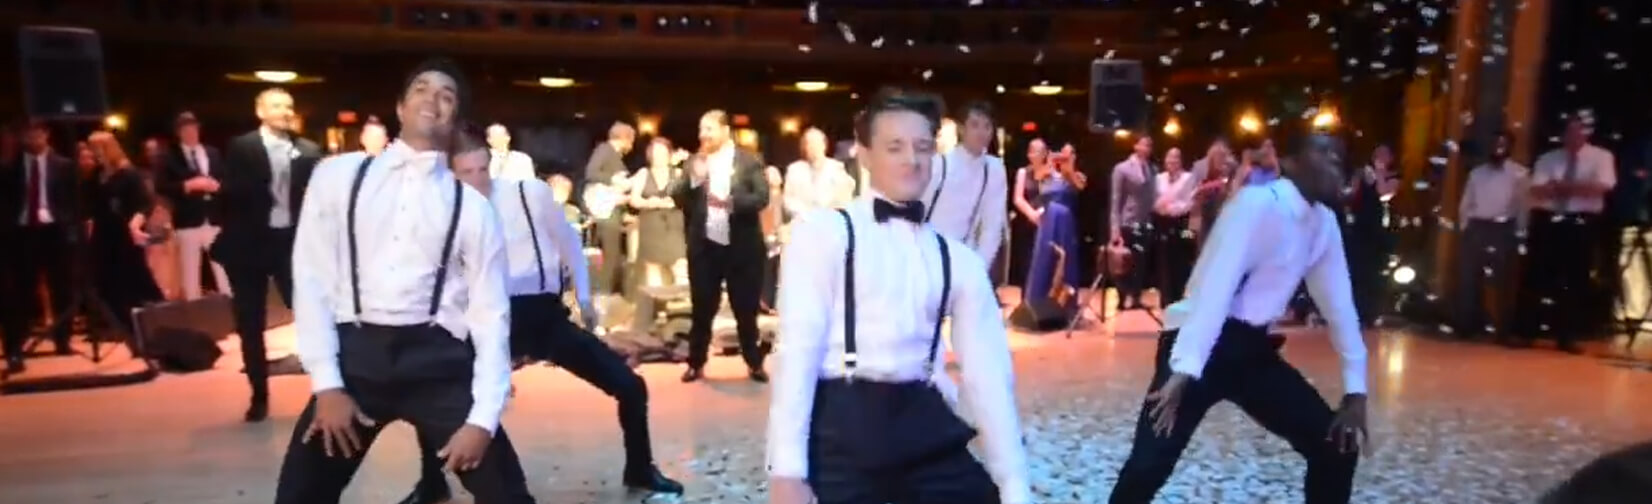 Groom Surprises Bride With EPIC Wedding Dance